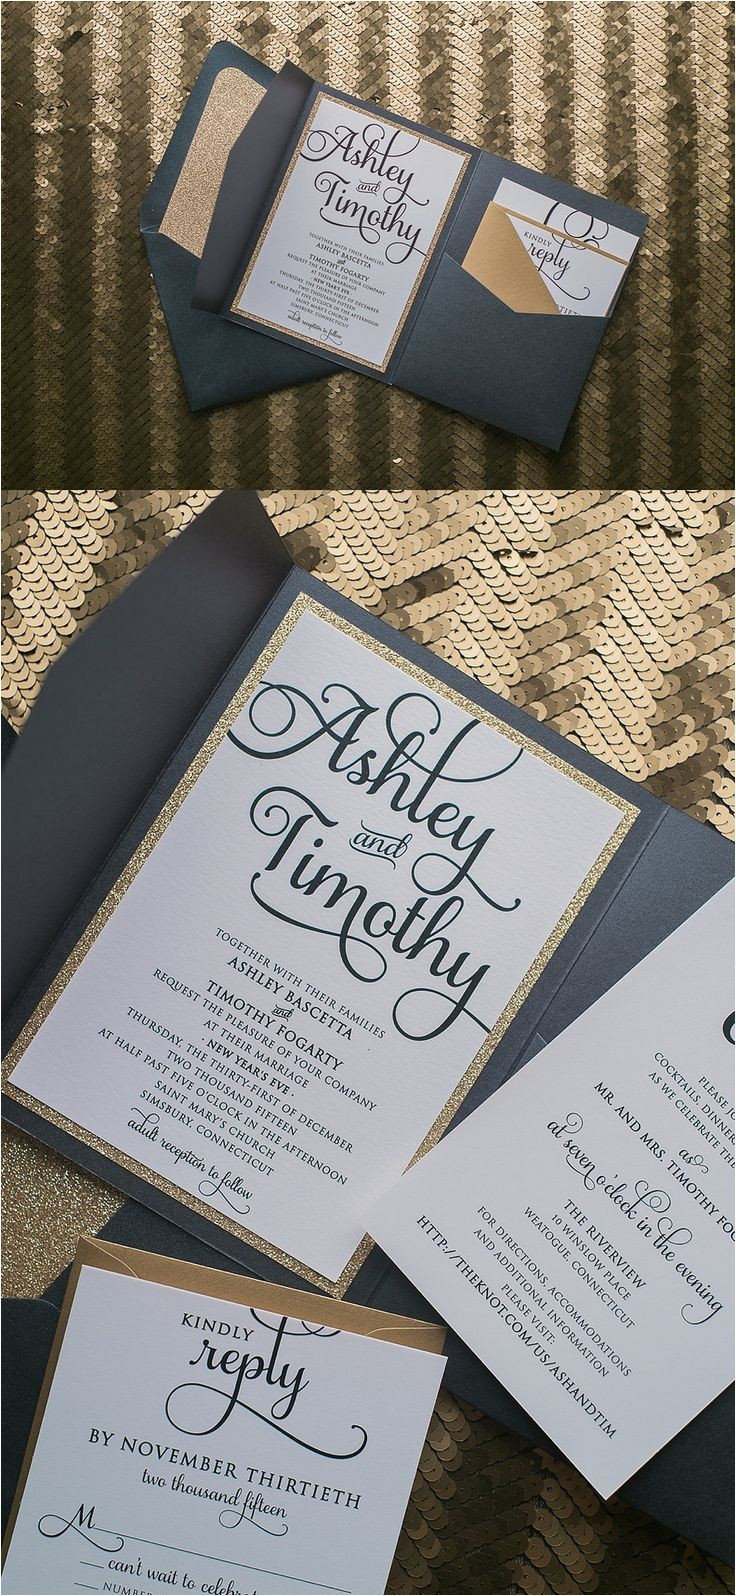 wedding invitation wording whose name first luxury best 25 wedding invitation wording ideas on pinterest wedding 2